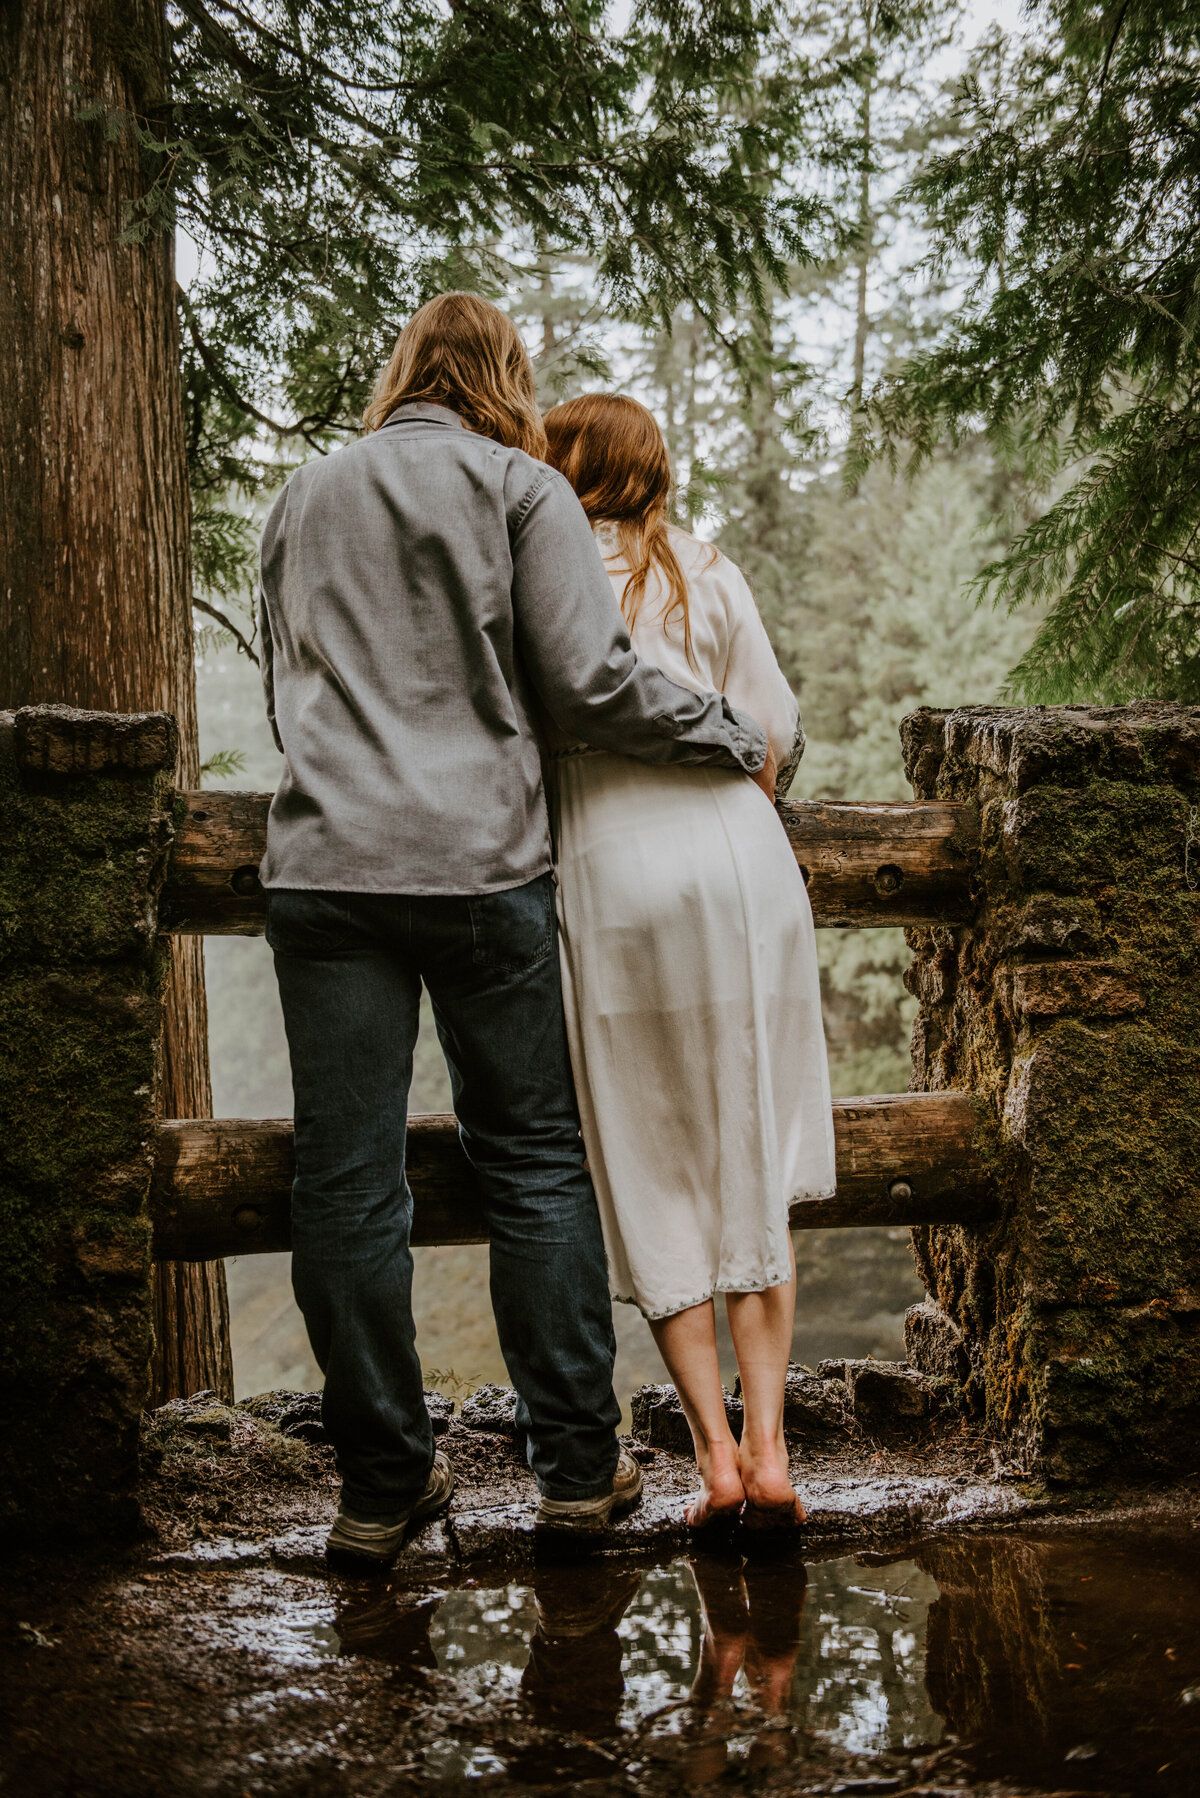 sahalie-falls-summer-oregon-photoshoot-adventure-photographer-bend-couple-forest-outfits-elopement-wedding8202